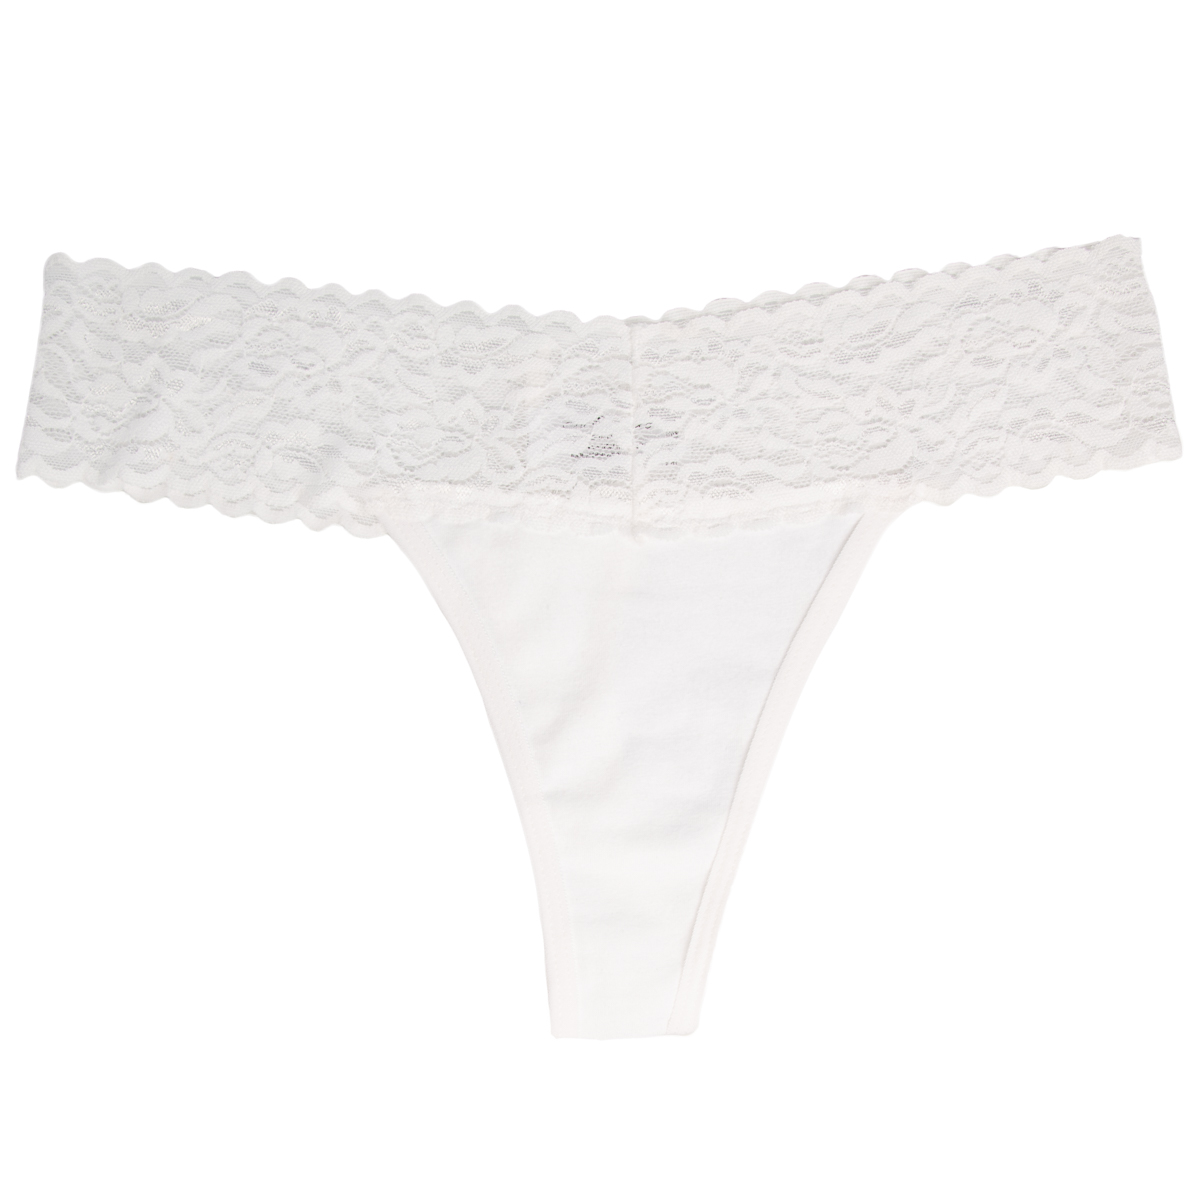 6-Pack-Cotton-Lace-Thong-Underwear-For-Women-Soft-Sexy-Lingerie-Panties-Thongs thumbnail 22